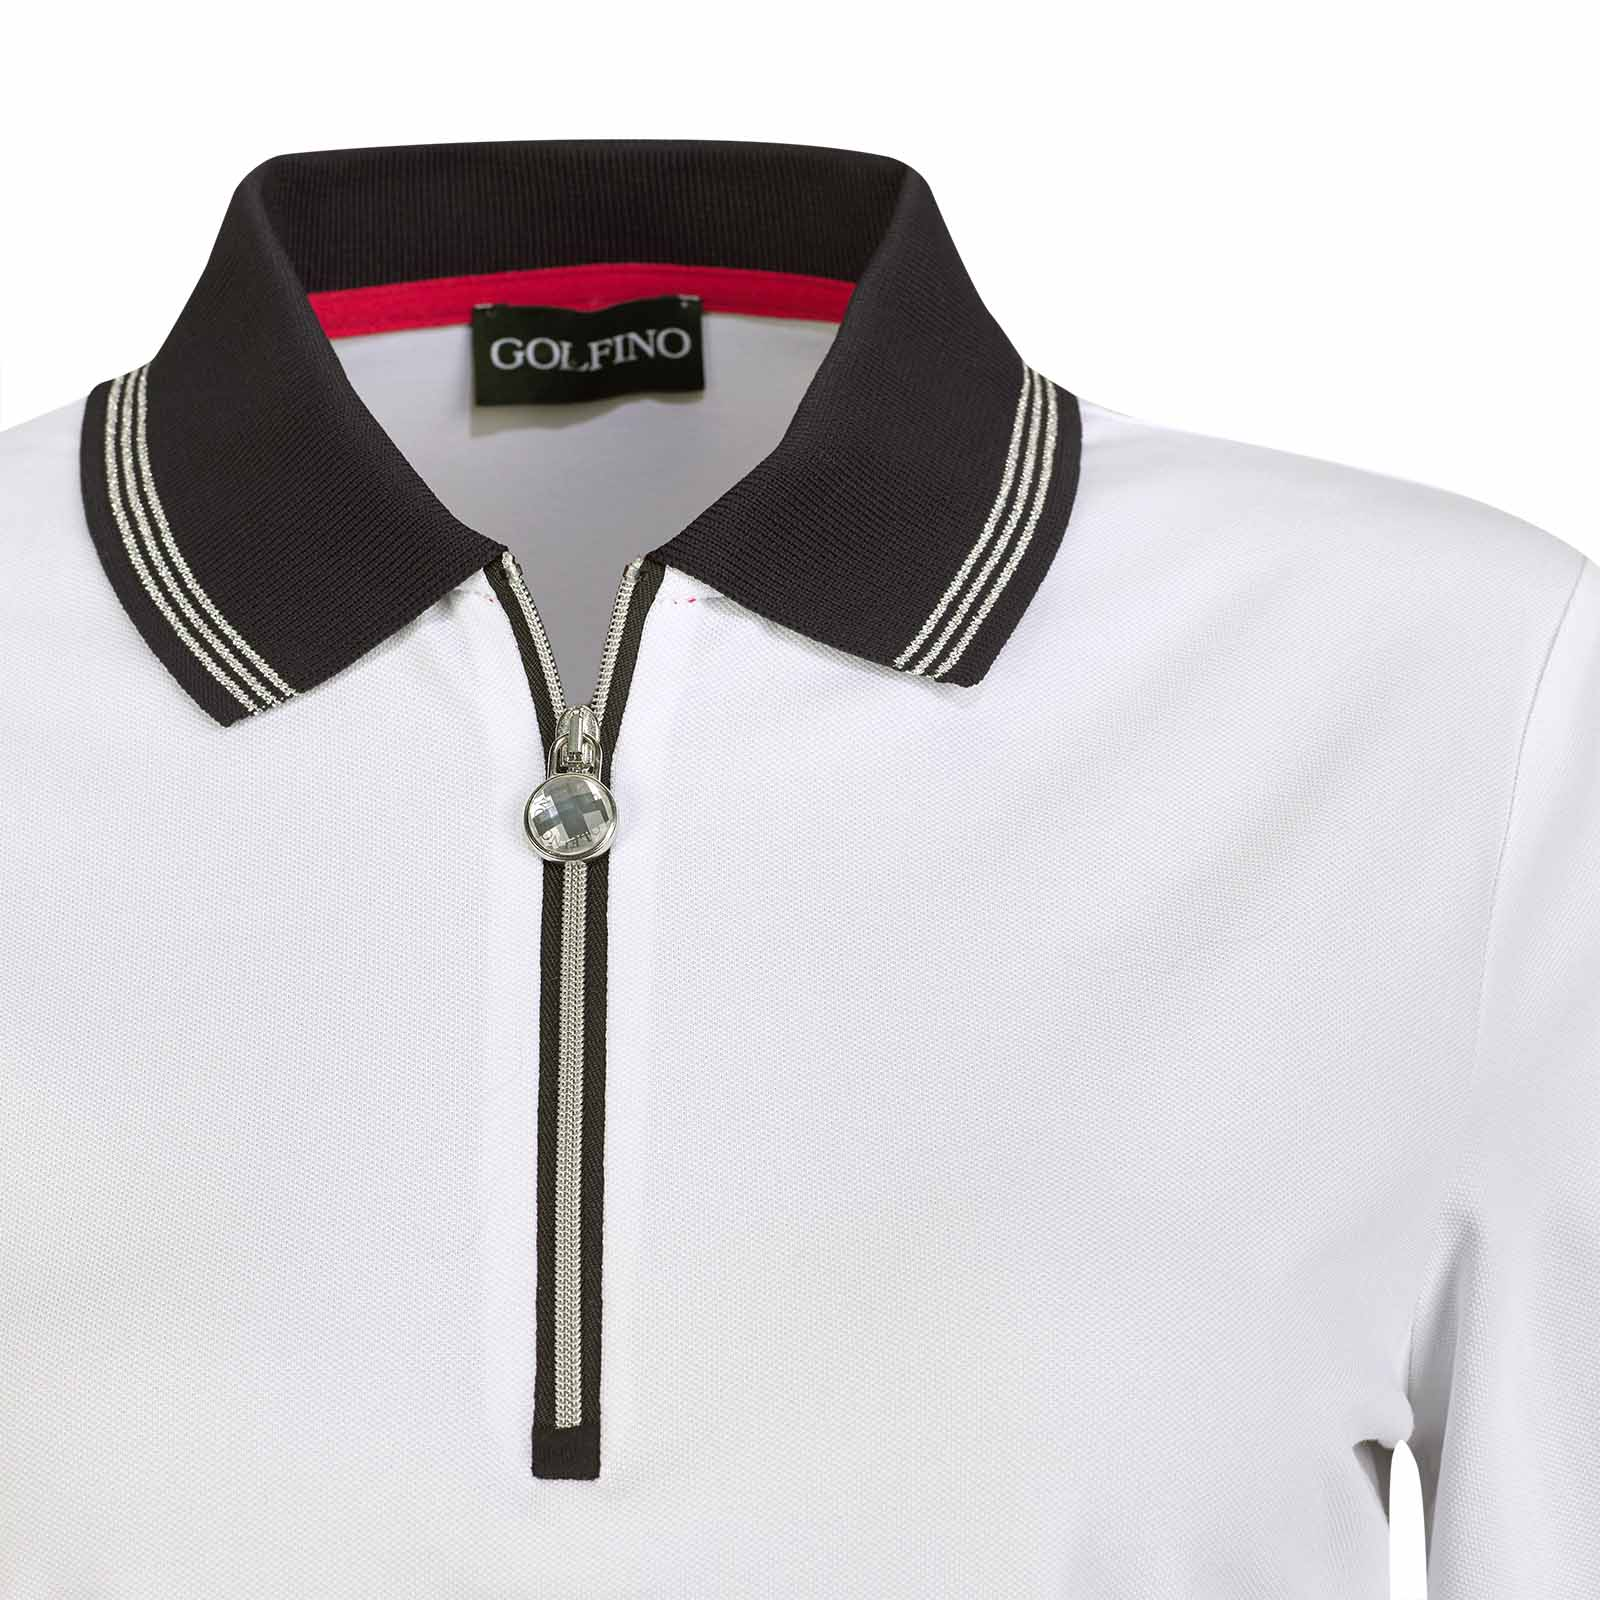 Damen Langarm Golfpolo mit Sun Protection Funktion und Troyer Zip